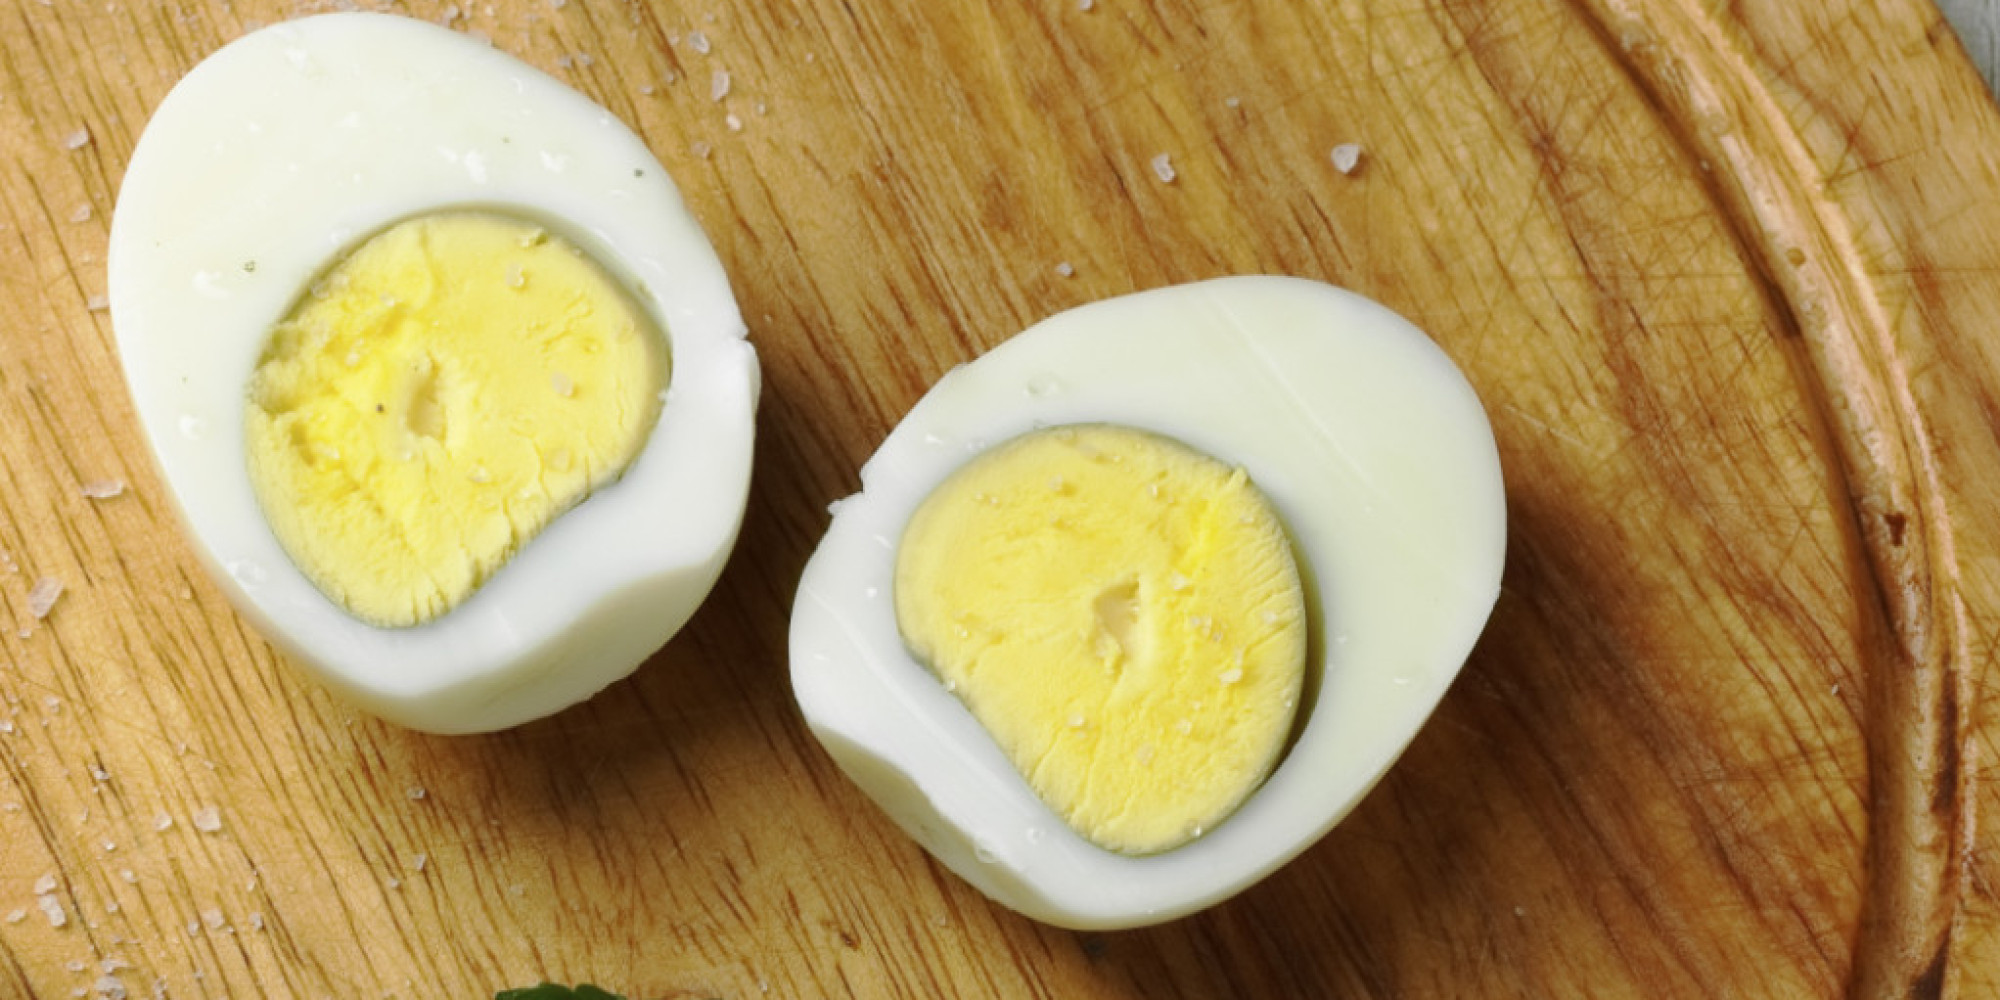 Why There's A Gross Green Ring Around The Yolk Of Your Hard Boiled Egg   Huffpost